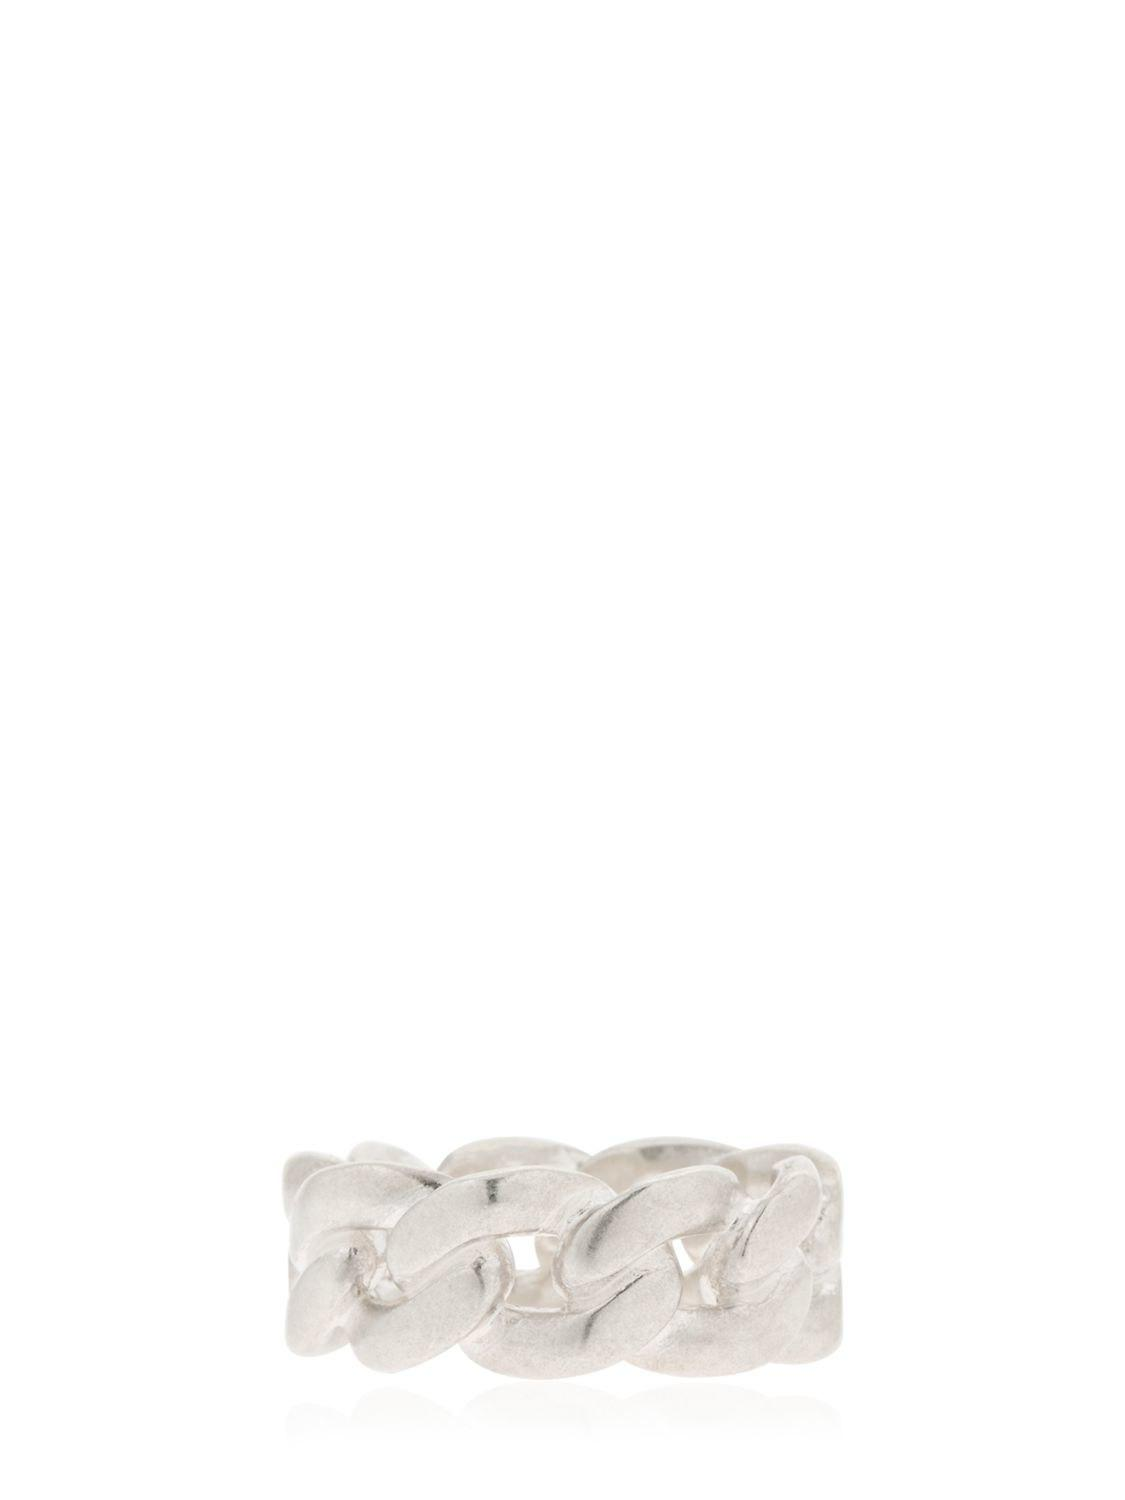 Maison Martin Margiela chain-link ring - Metallic